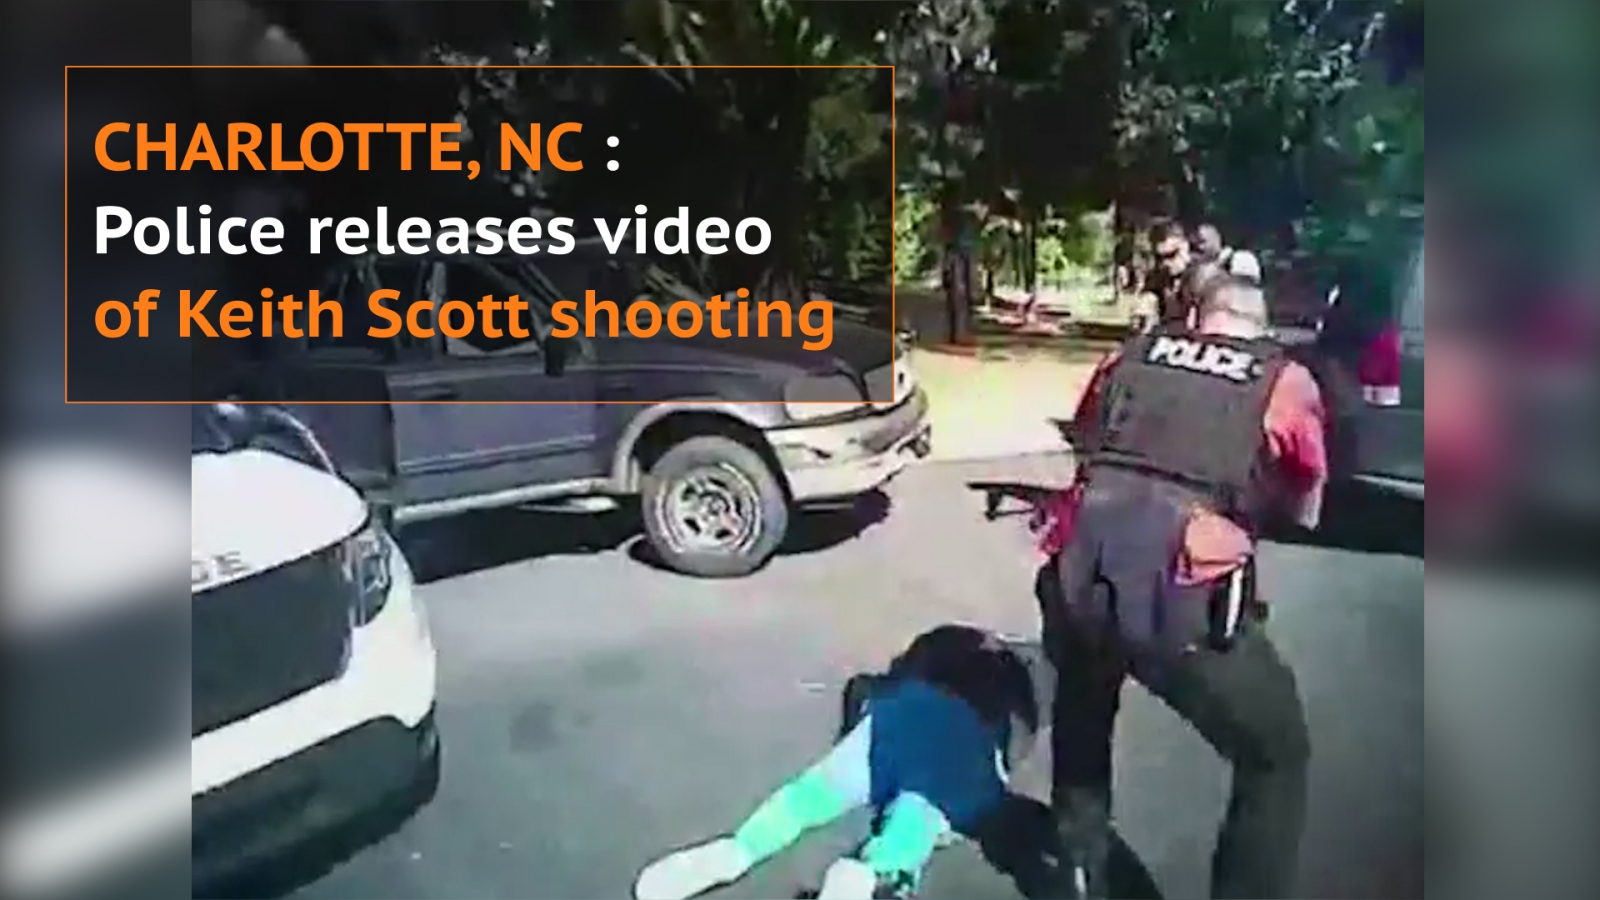 Police releases video of Keith Scott shooting